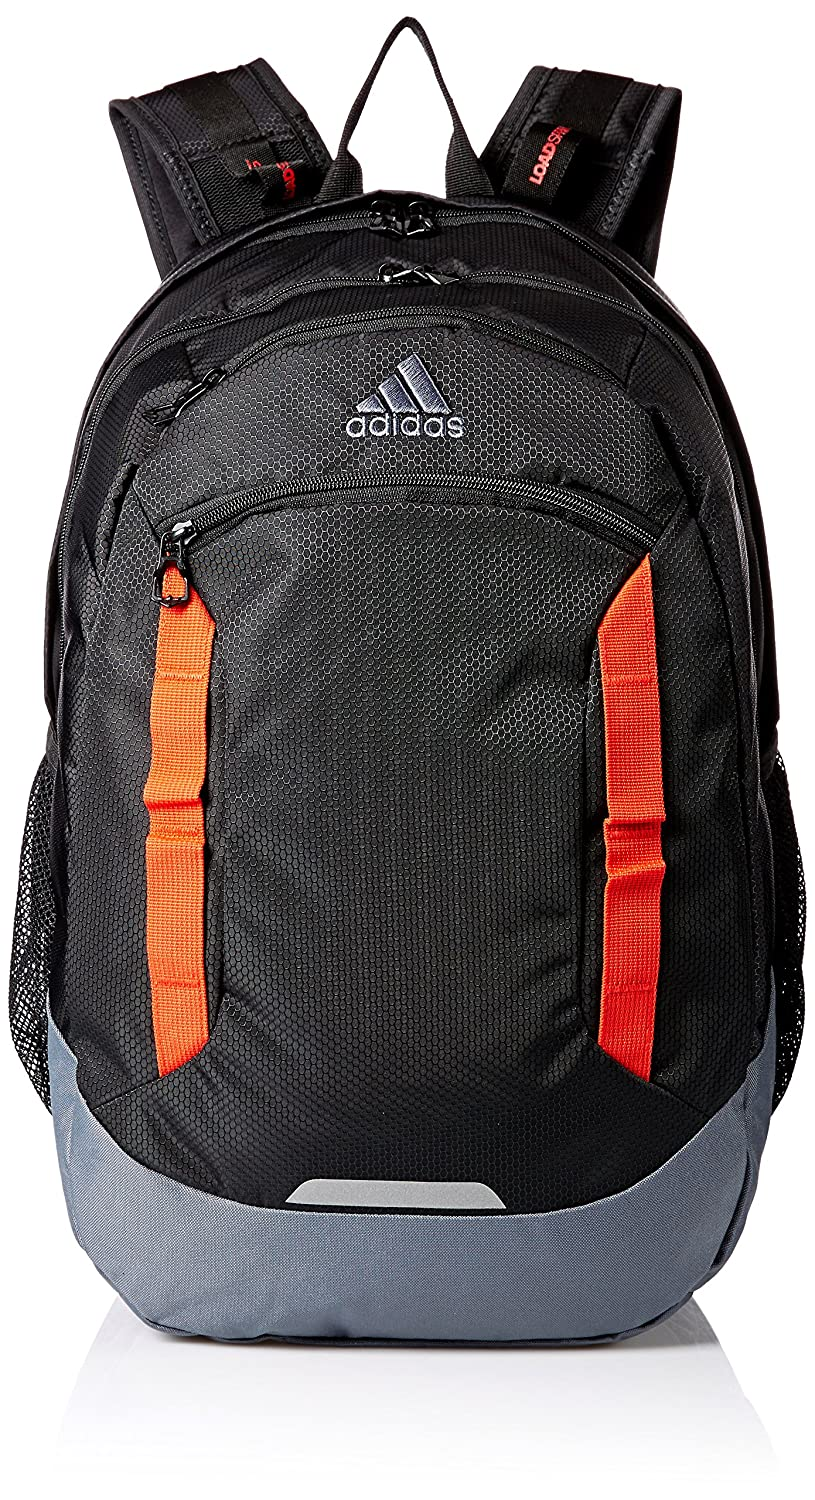 Adidas Excel IVバックパック B079D8FCZF One Size|Black/Hi-Res Red/Onix Black/HiRes Red/Onix One Size